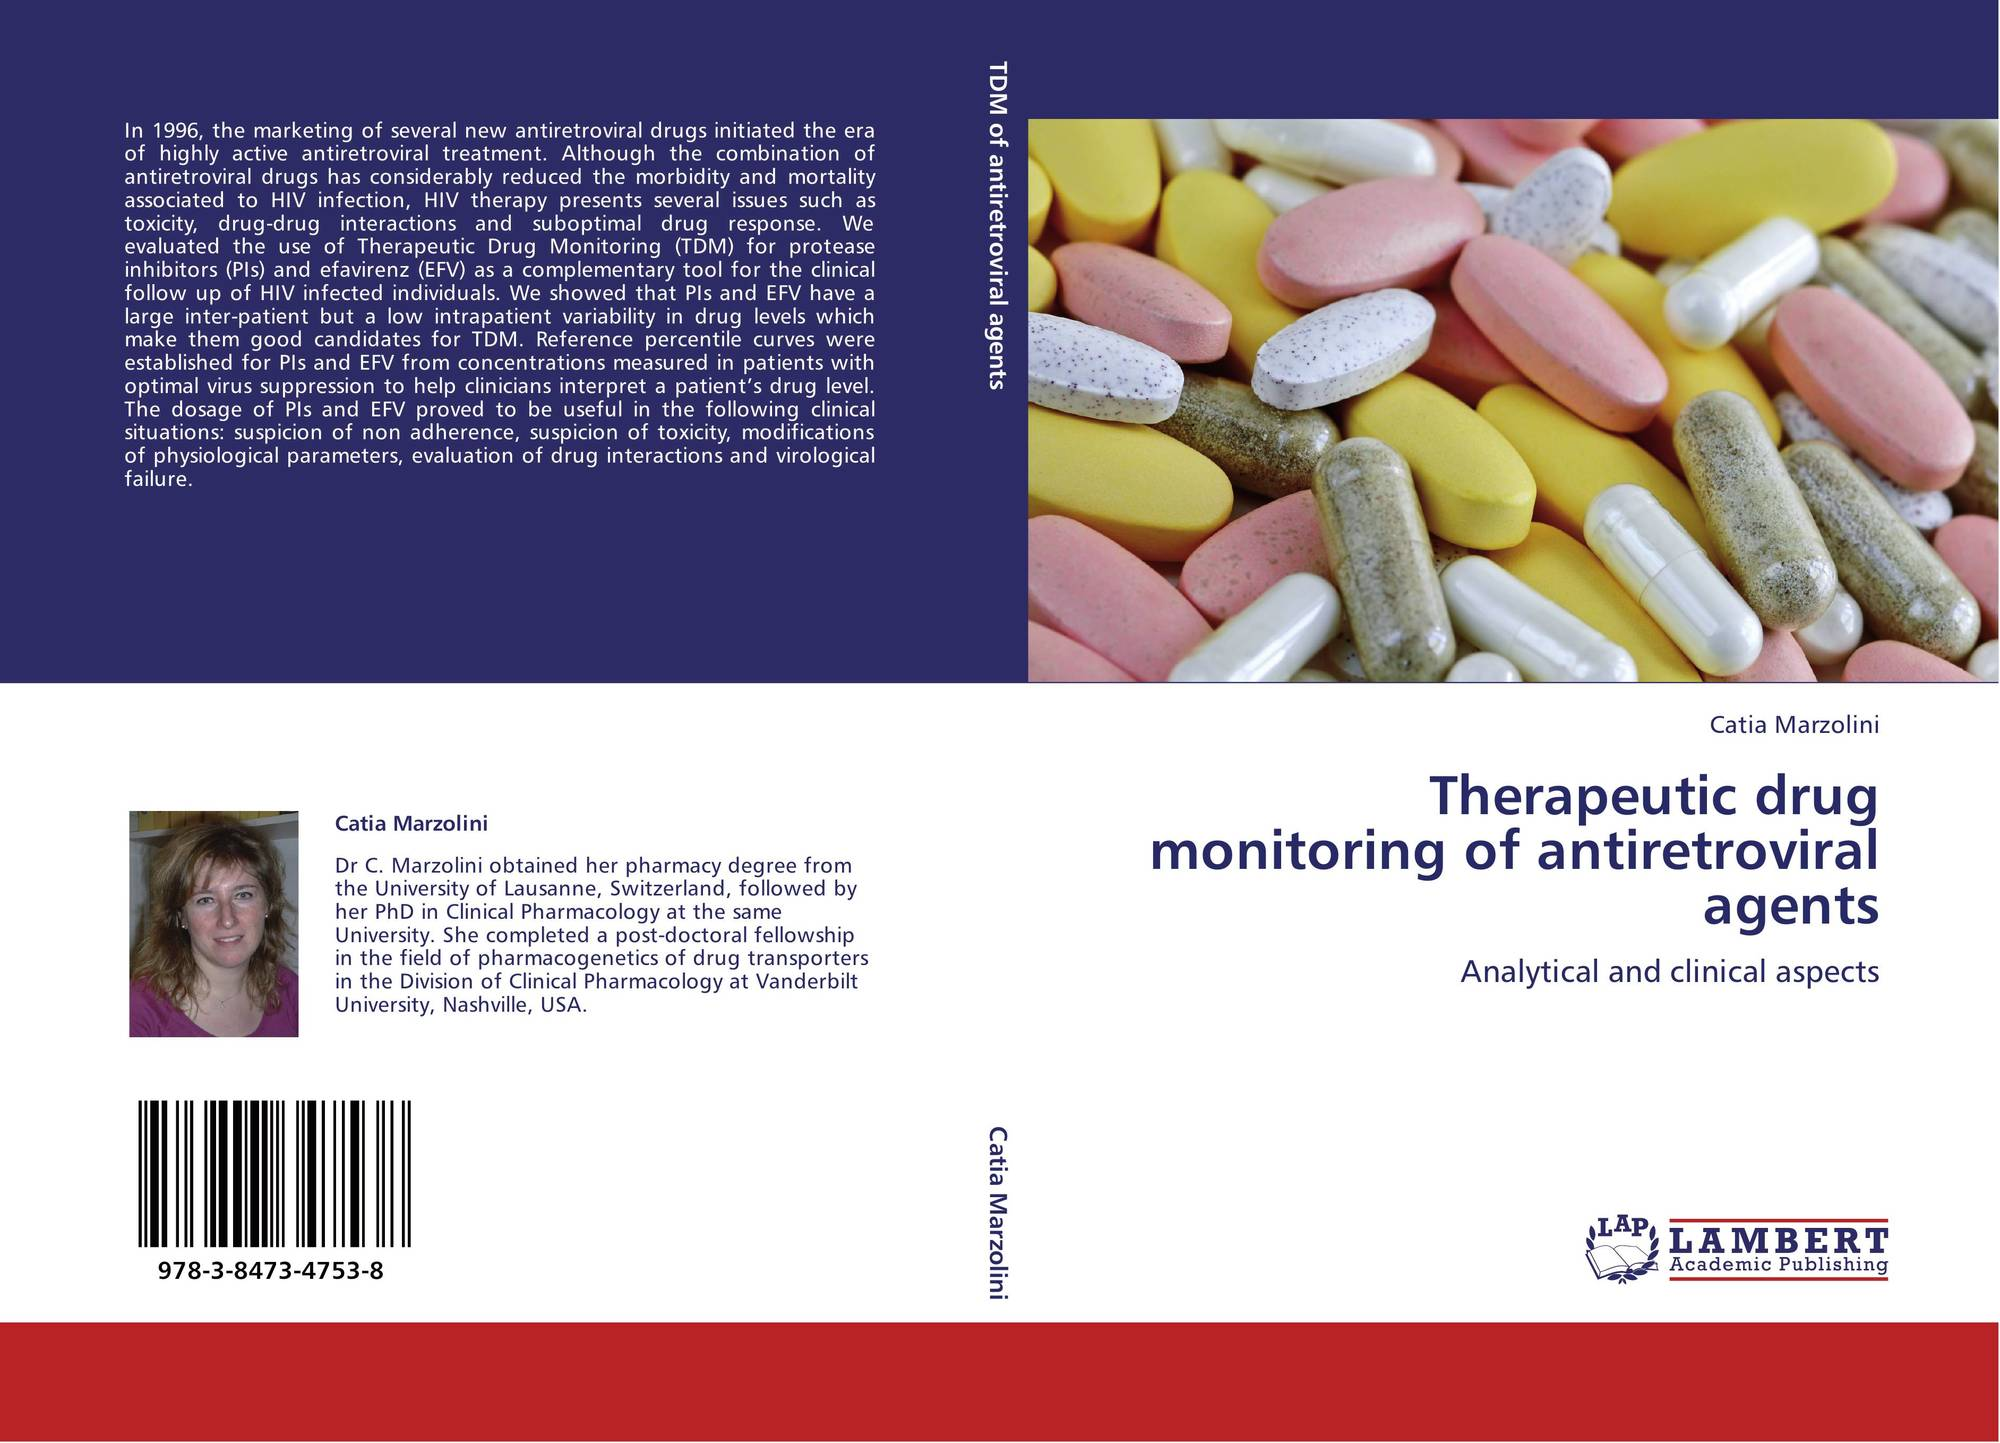 research and development of anti retroviral drugs essay This special issue of antiviral research [85(1), 2010] highlights the principal milestones of antiretroviral research over 25 years of drug discovery and development and offers a comprehensive analysis by leading experts of the efforts being made to meet the challenges of effective control of hiv infection.